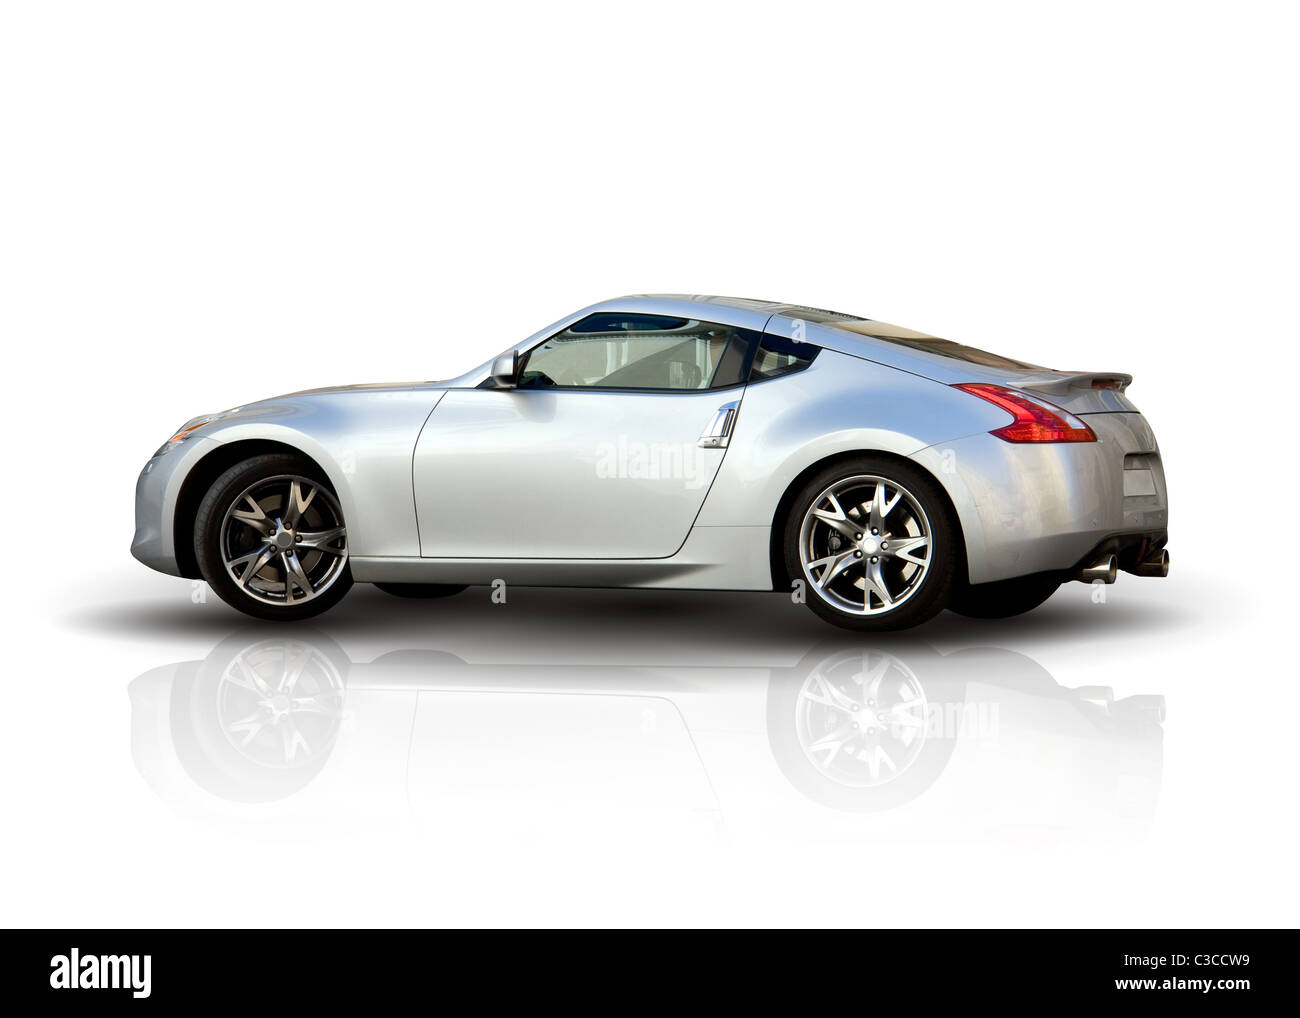 Modern Sports Car - Isolated over White Background - Stock Image